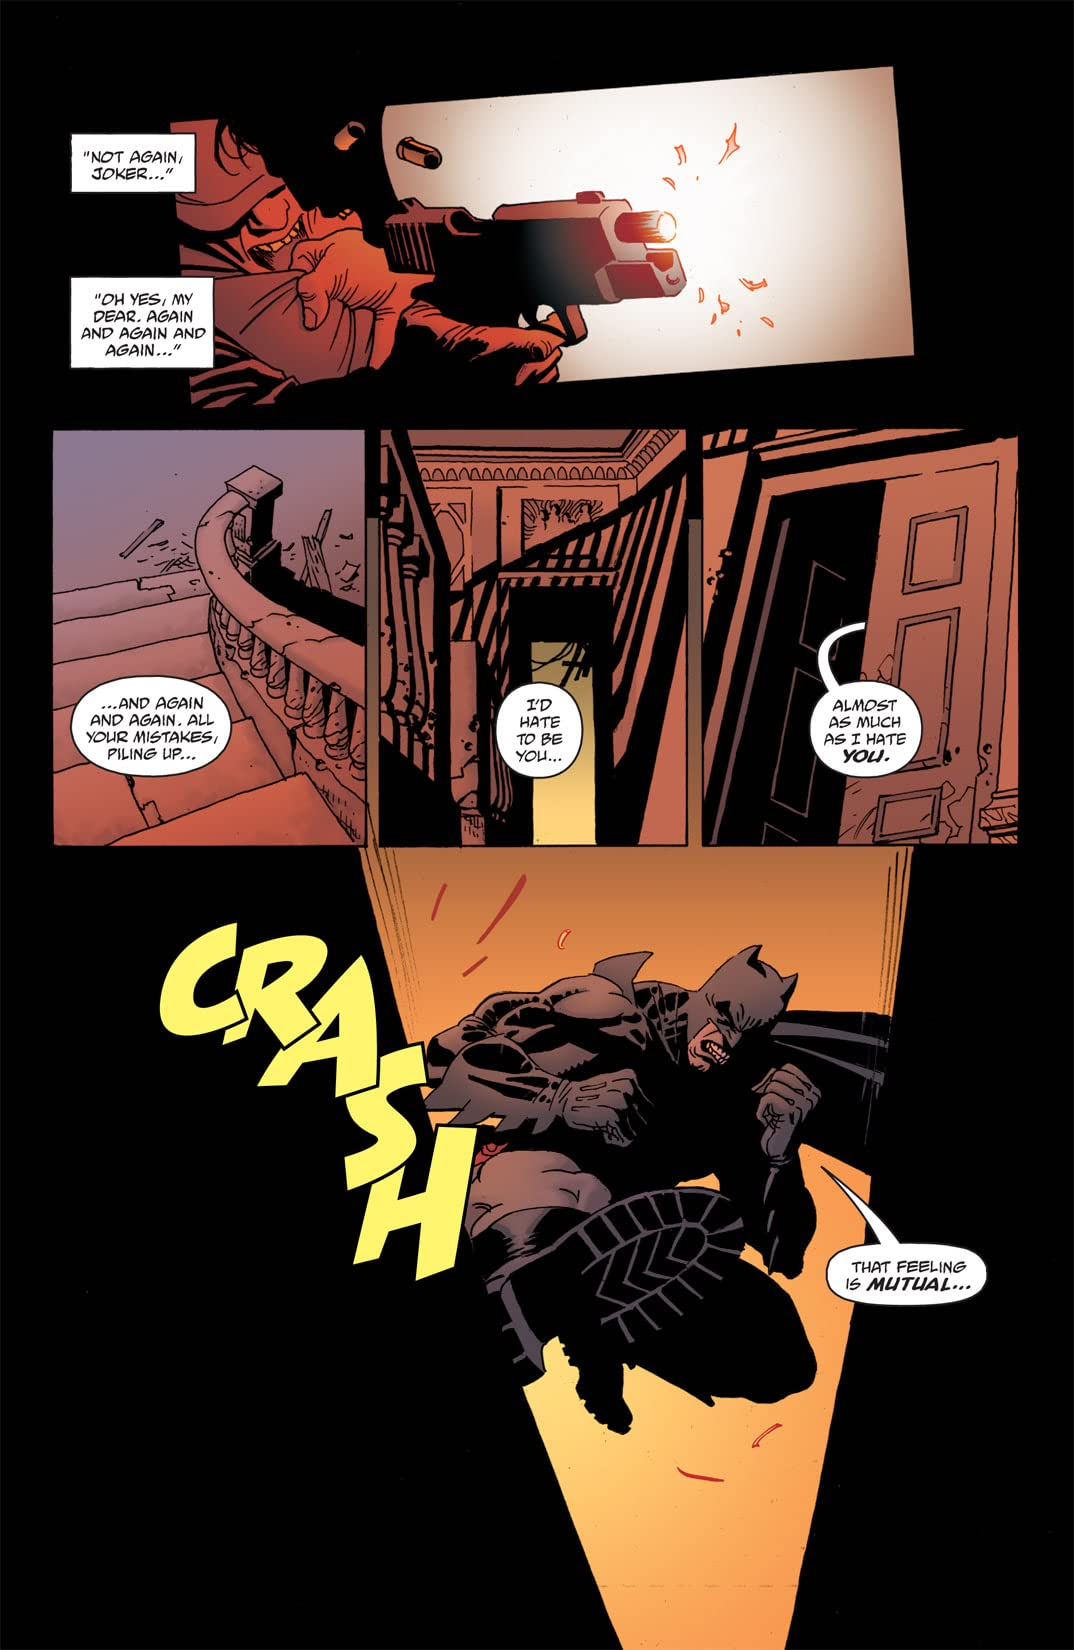 Flashpoint: Batman - Knight of Vengeance #3 (of 3)